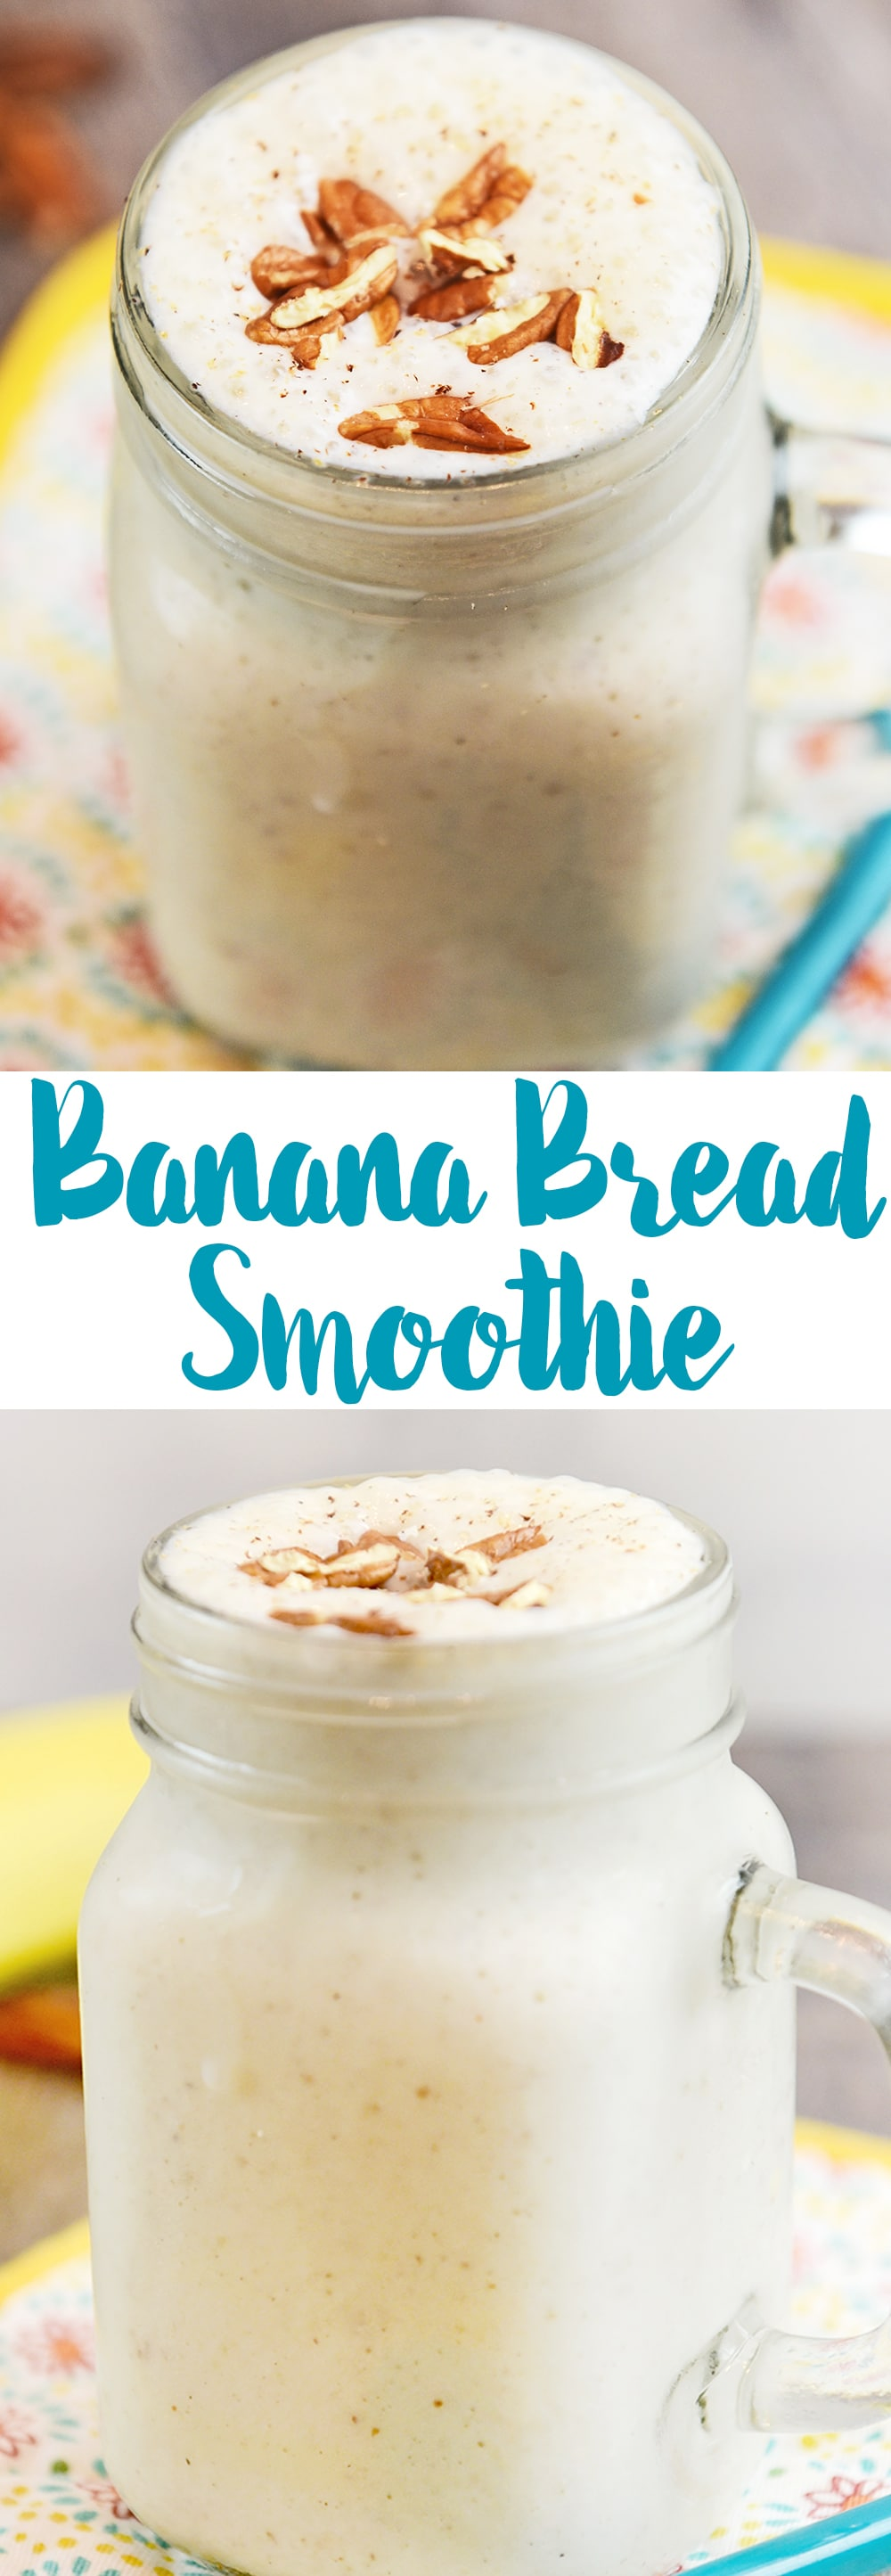 A Banana Bread Smoothie is a simple and nutritious breakfast idea. I combine yummy banana bread ingredients like bananas, cinnamon and nutmeg with milk and yogurt. Smoothies made with milk are quick, simple, nutrient-rich, protein-packed, and portable—for even the pickiest of eaters in your house.